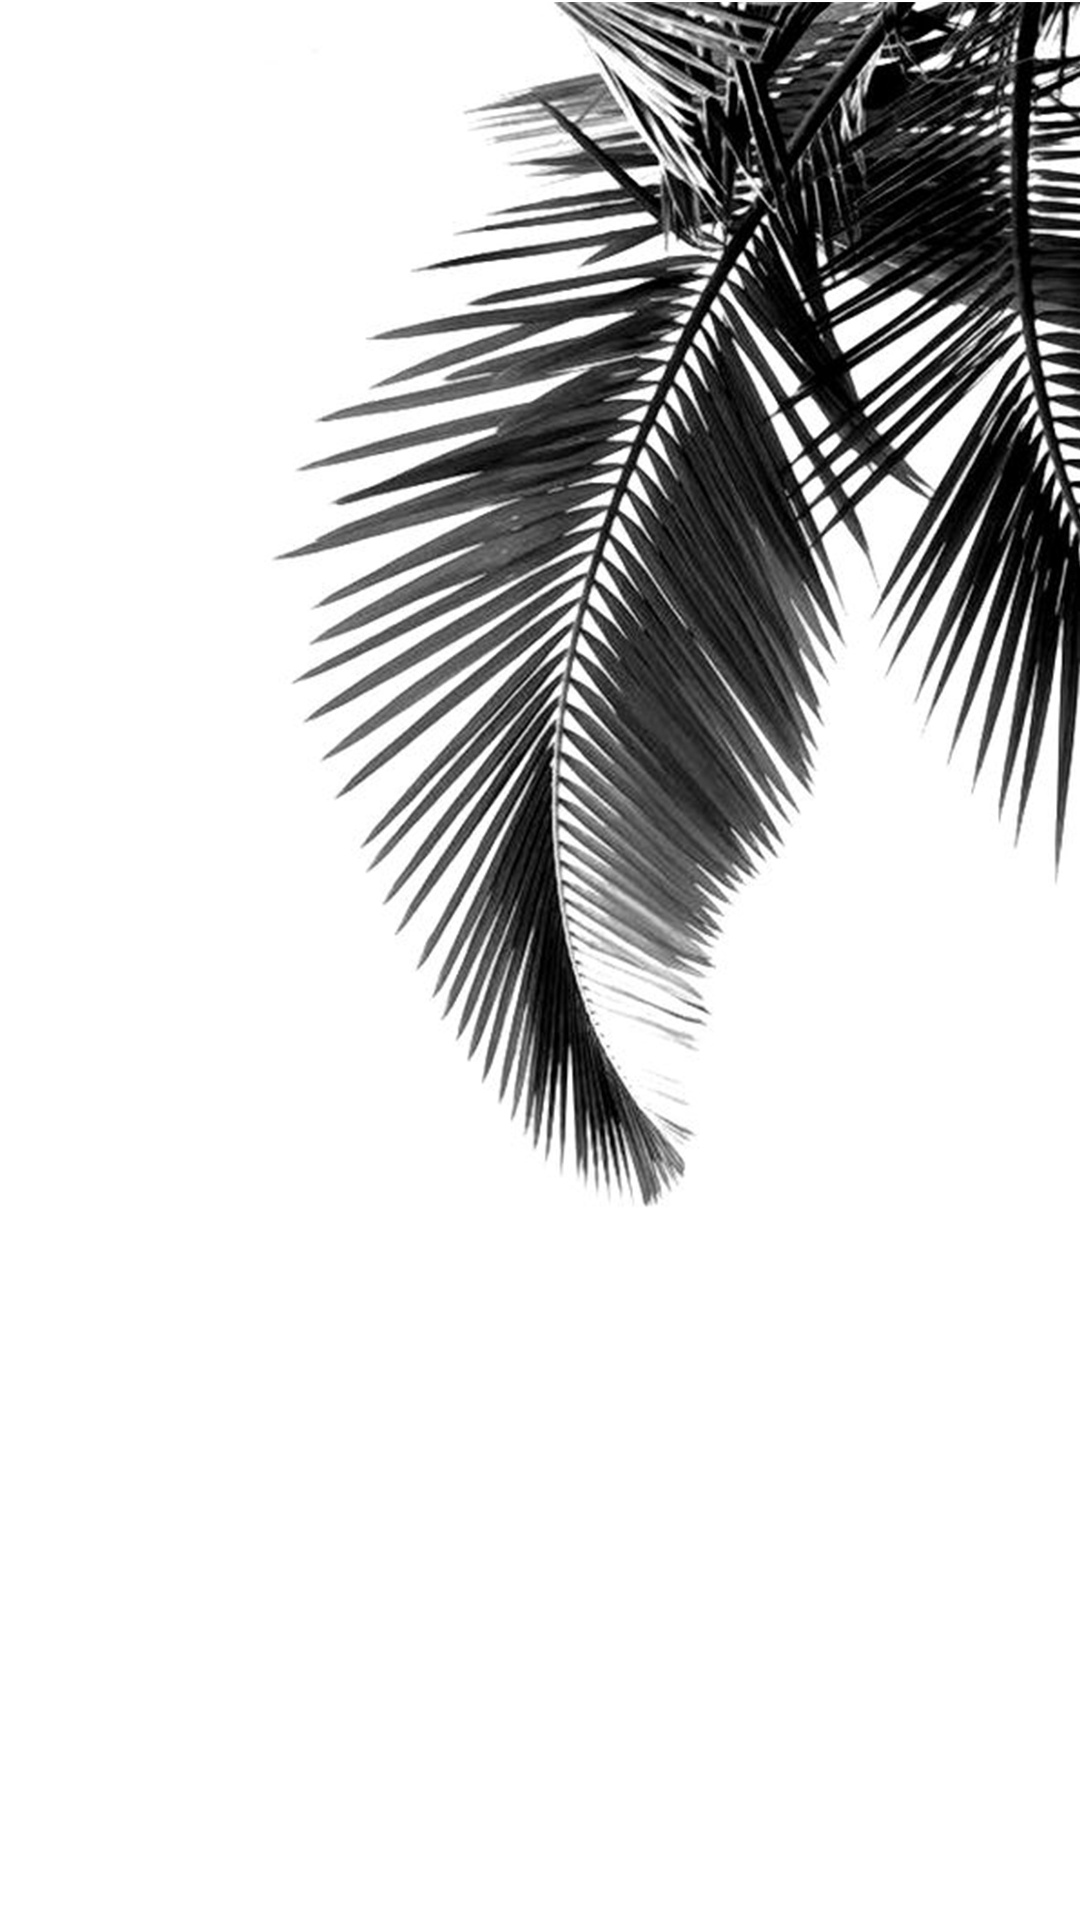 Fall Leaves Watercolor Wallpaper Banana Tree Leaves Simple Black And White Gray Background